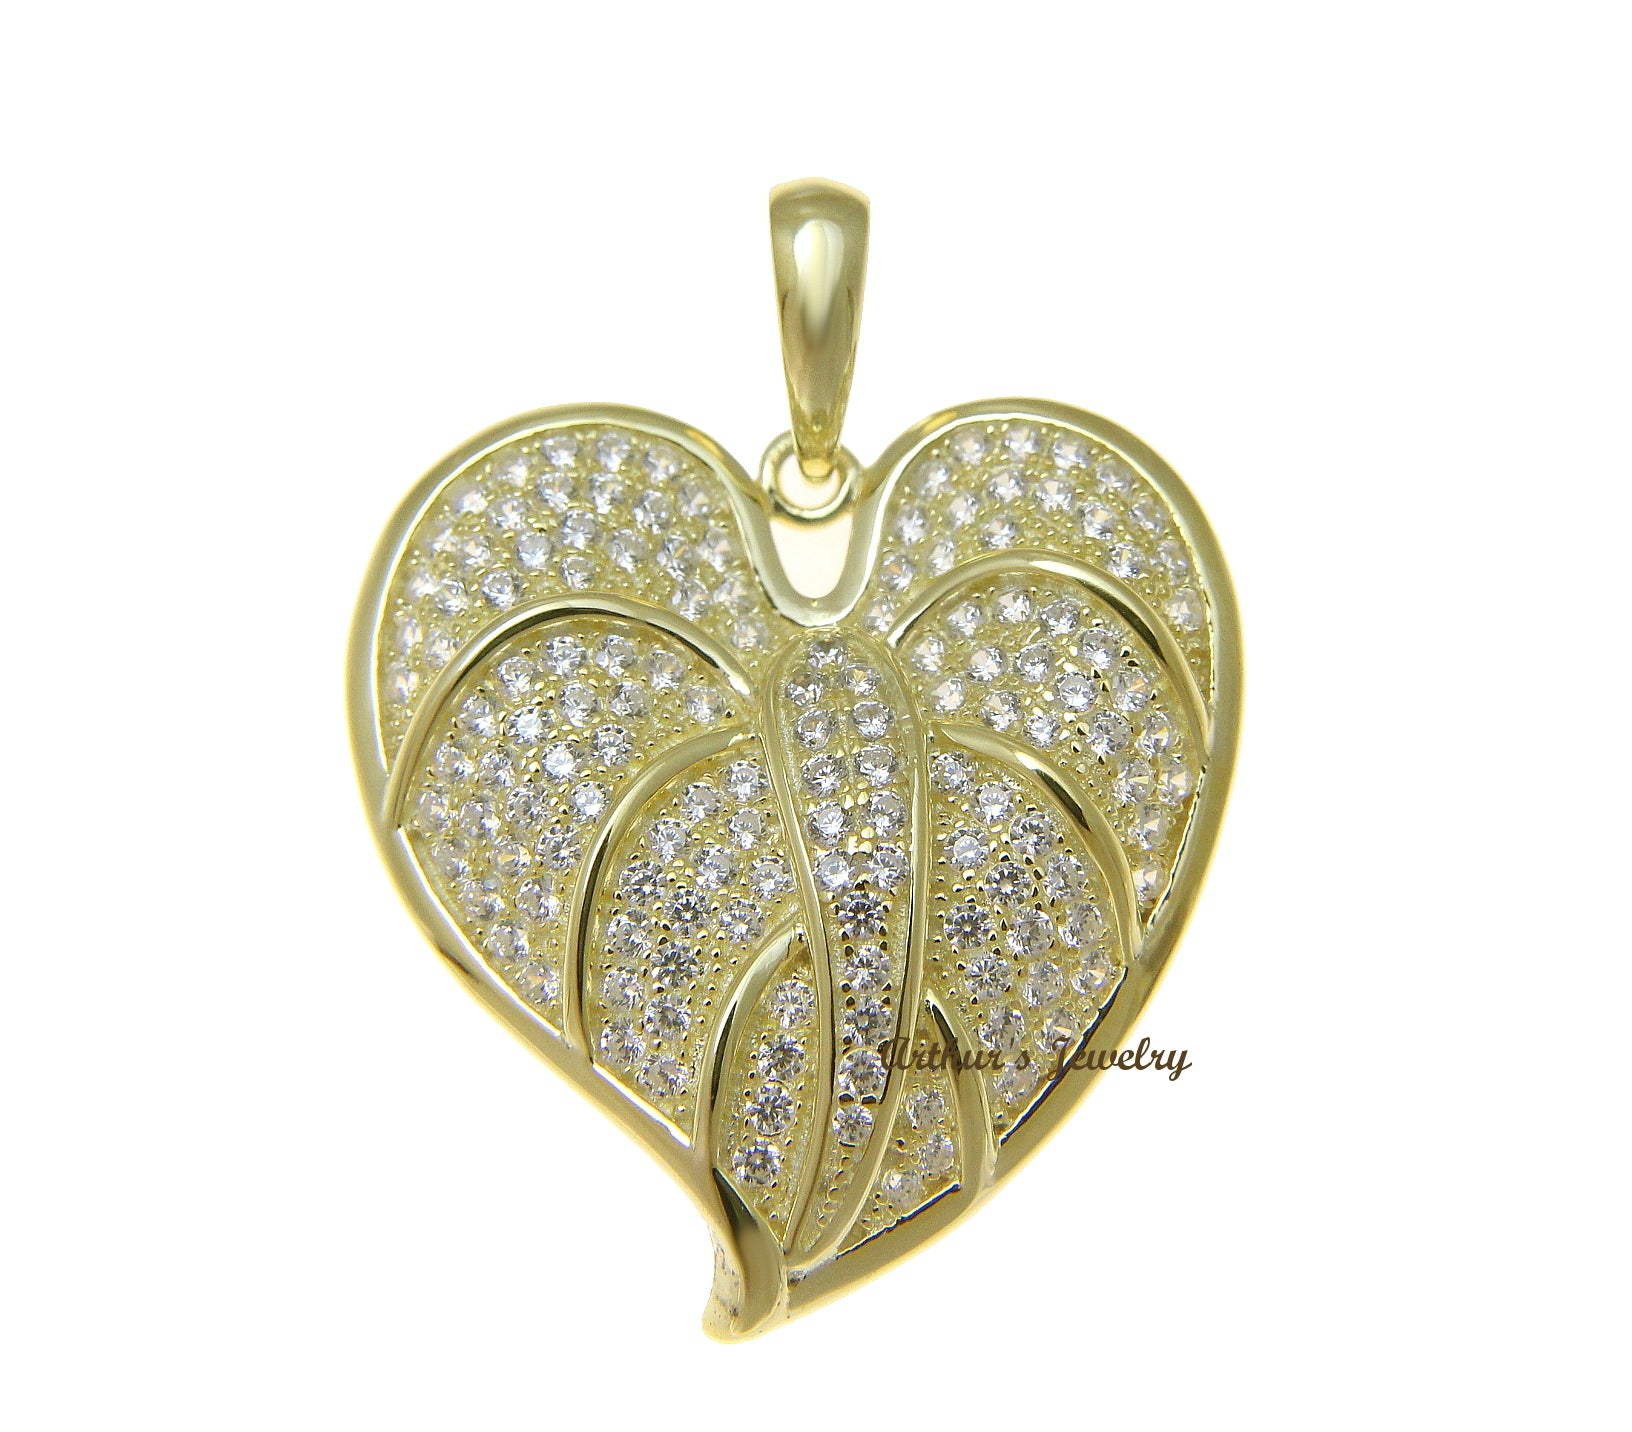 indin pendants flower indian gold jewellery pendant wm